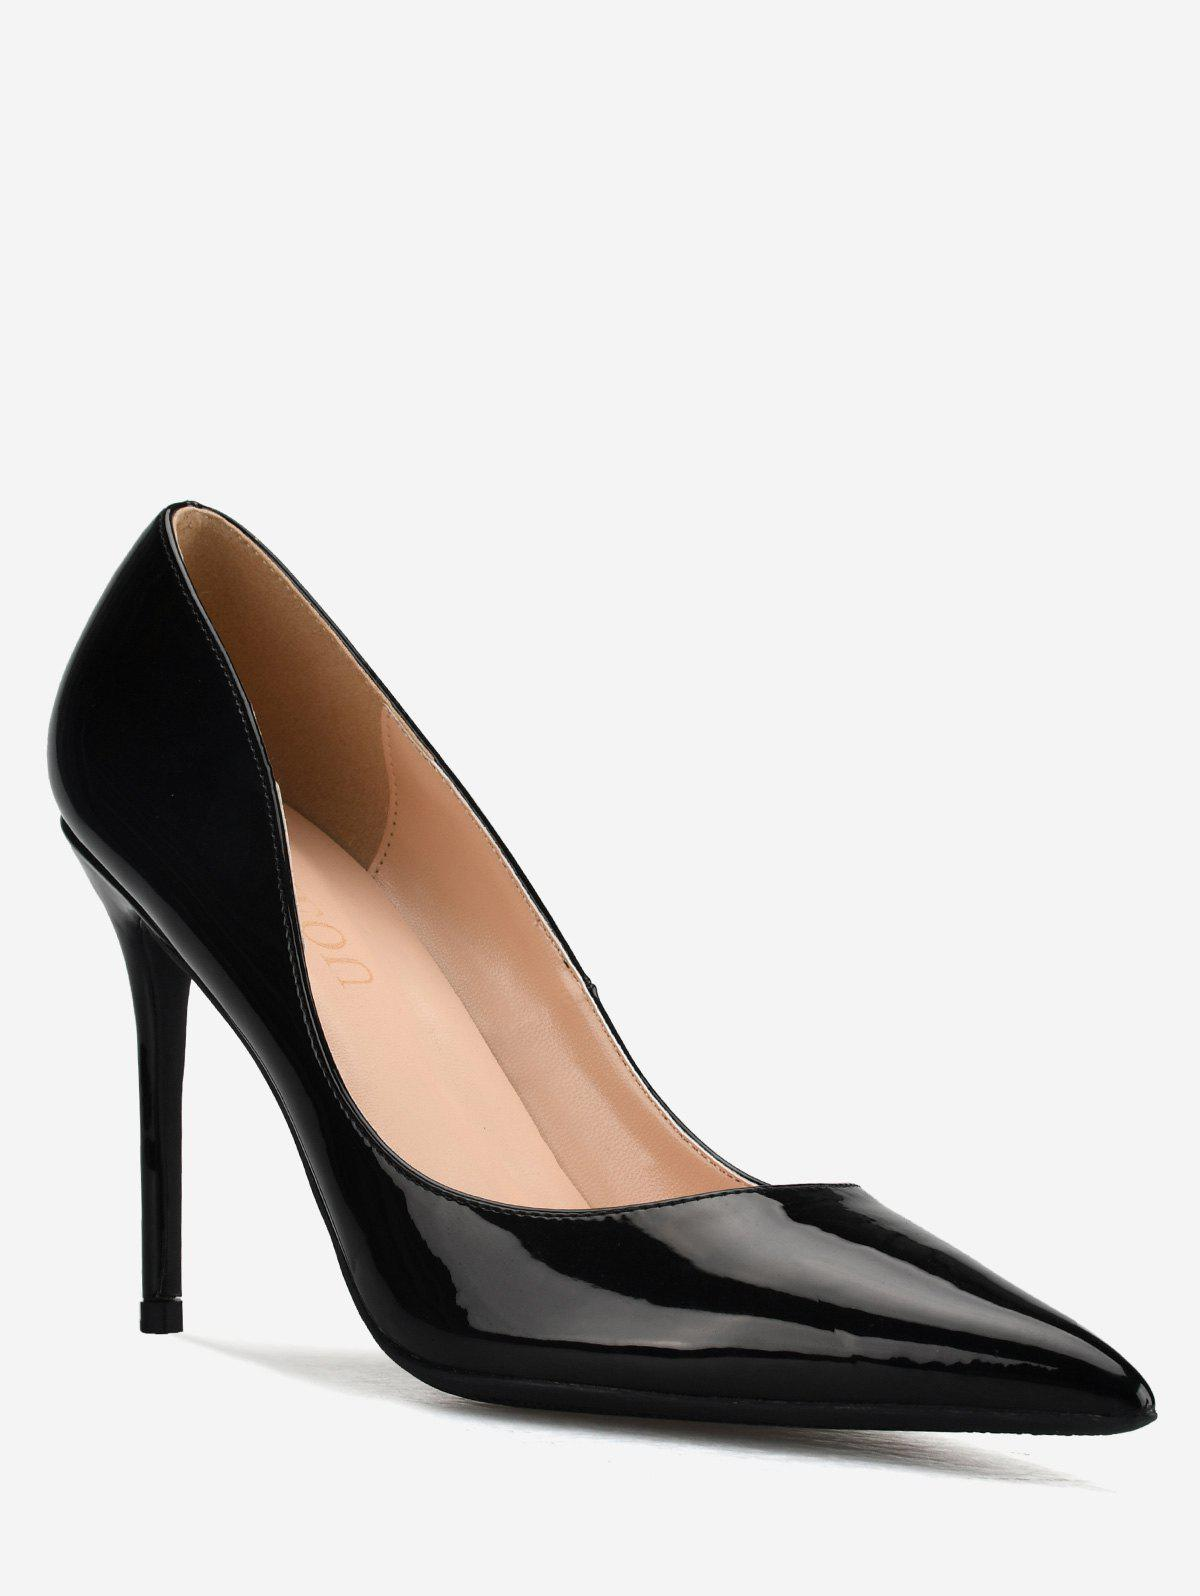 GOXEOU Casual Going Out Stiletto Heel Pumps